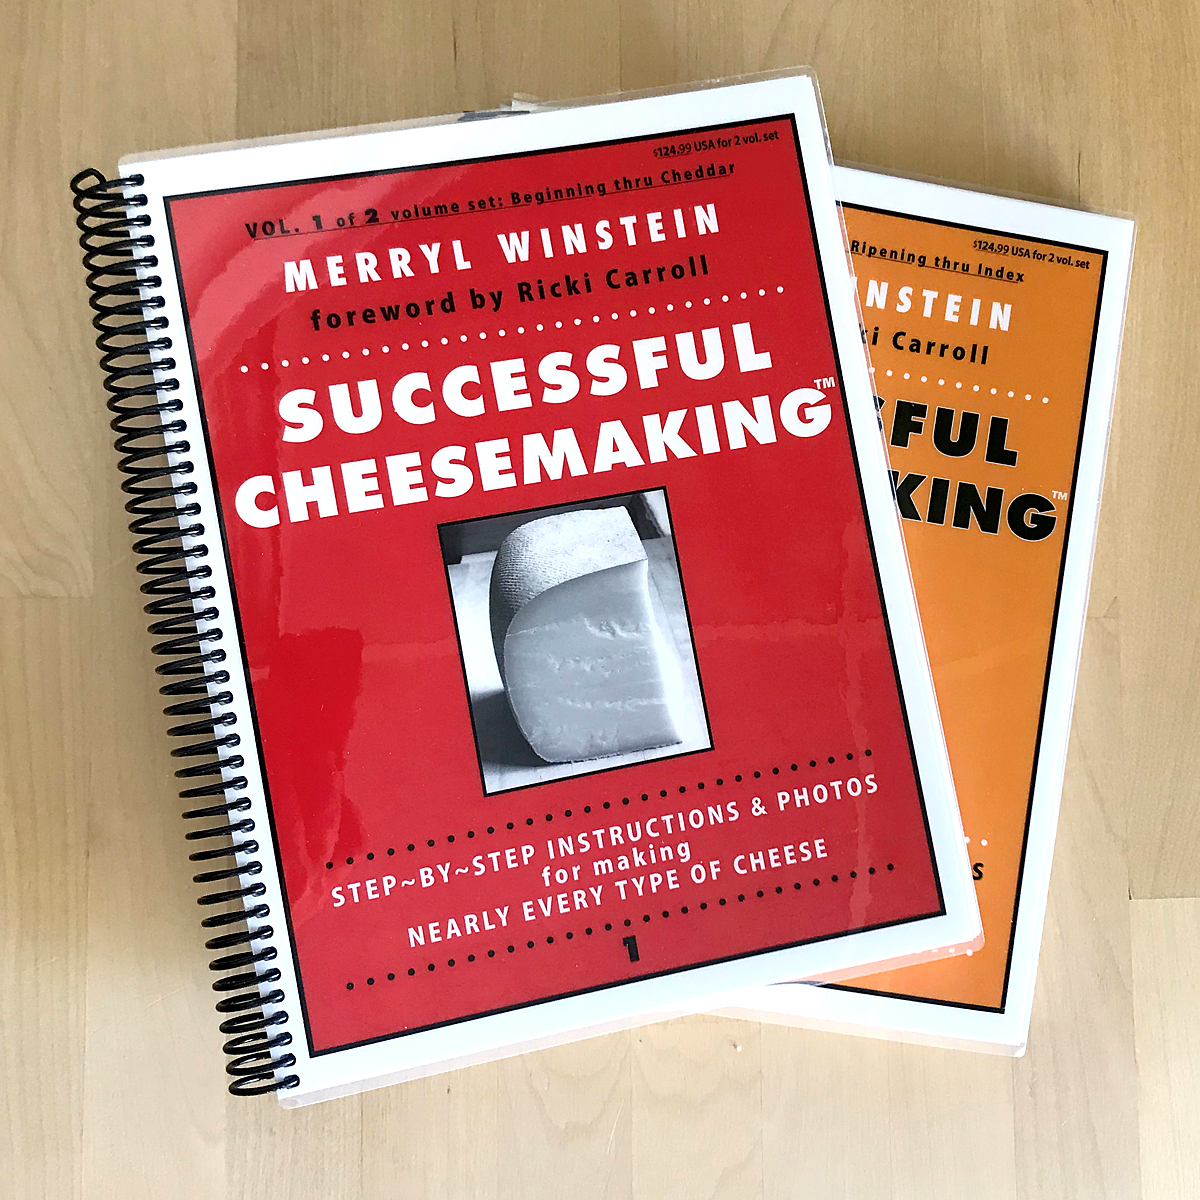 Successful Cheesemaking by Merryl Winstein